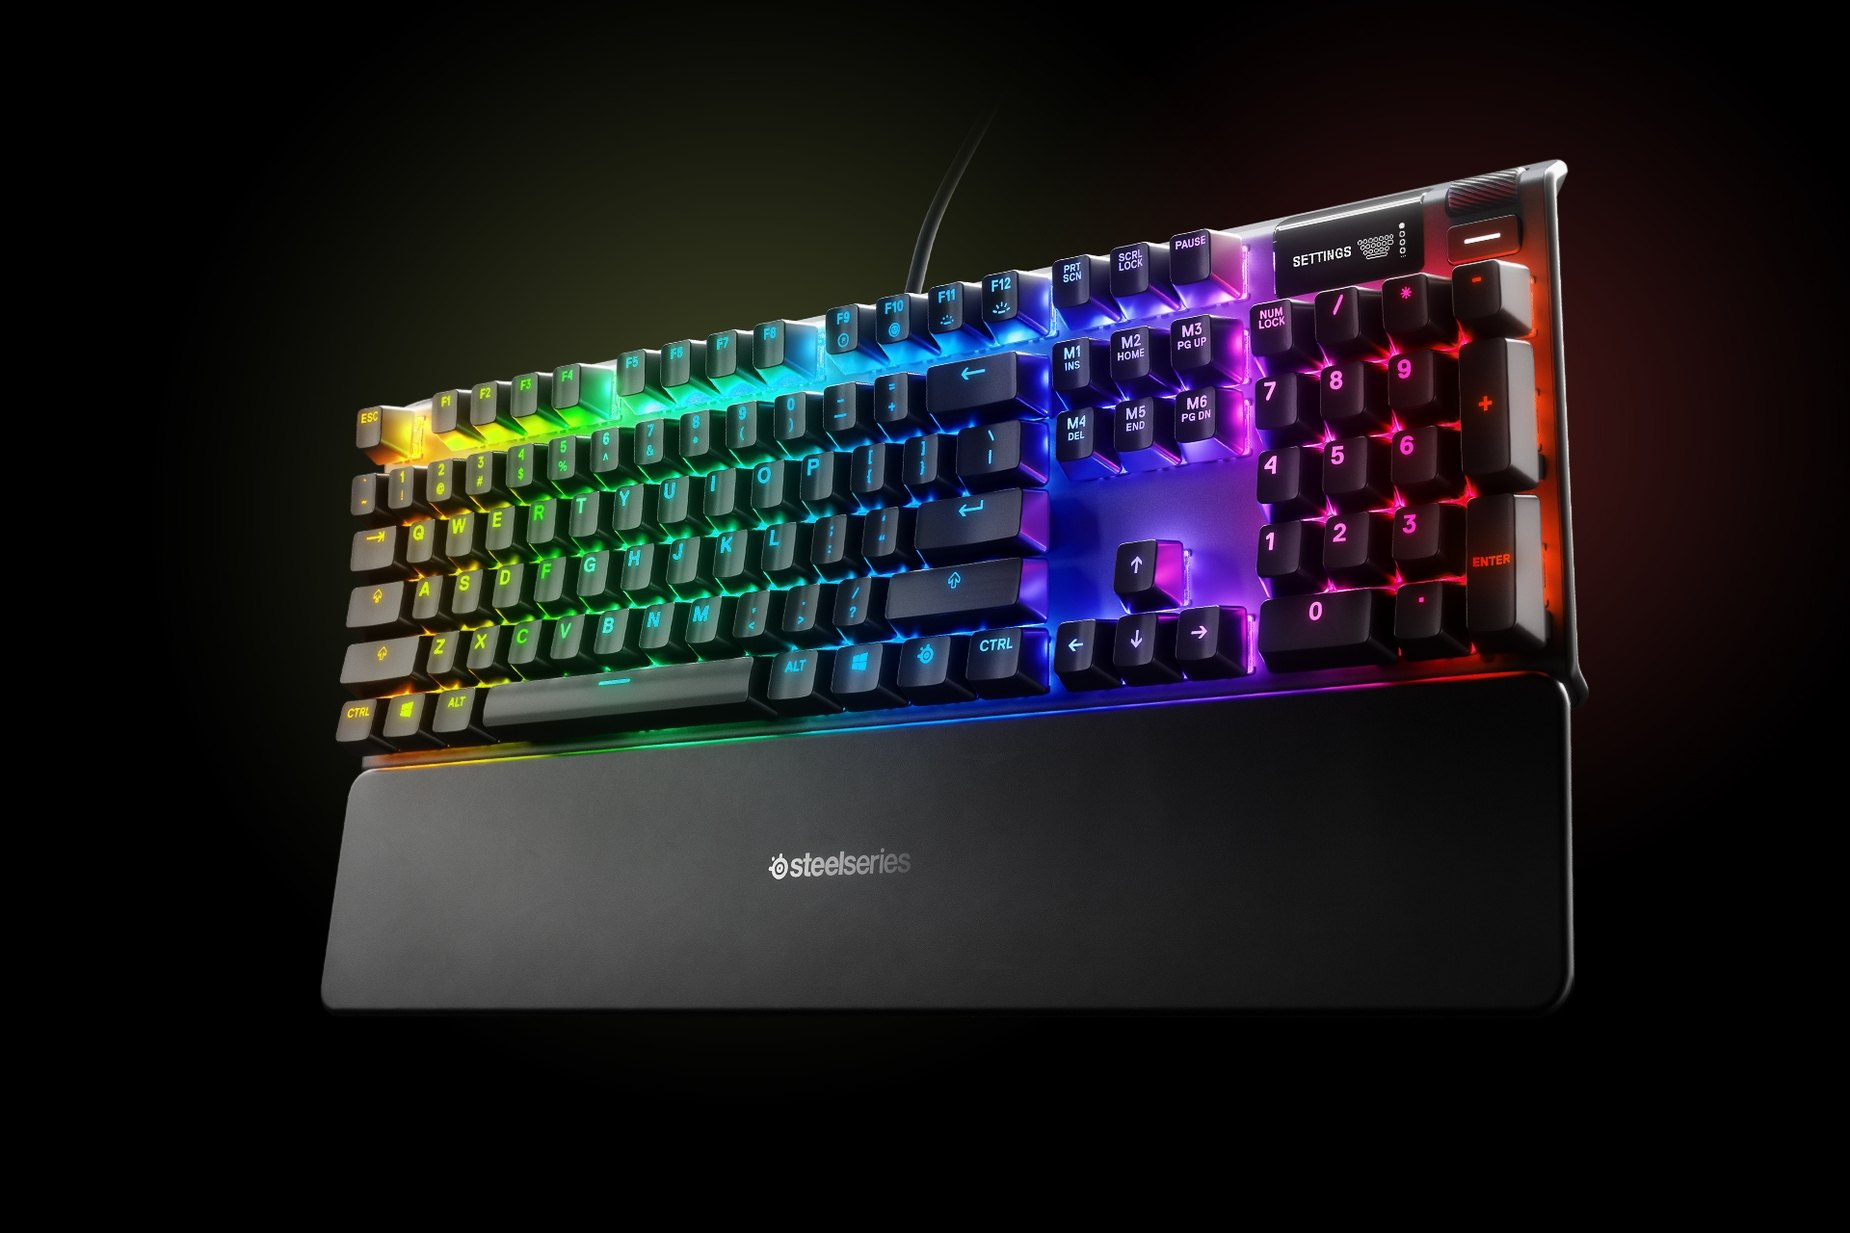 法语-Apex 7 (Brown Switch) gaming keyboard with the illumination lit up on dark background, also shows the OLED screen and controls used to change settings and adjust audio